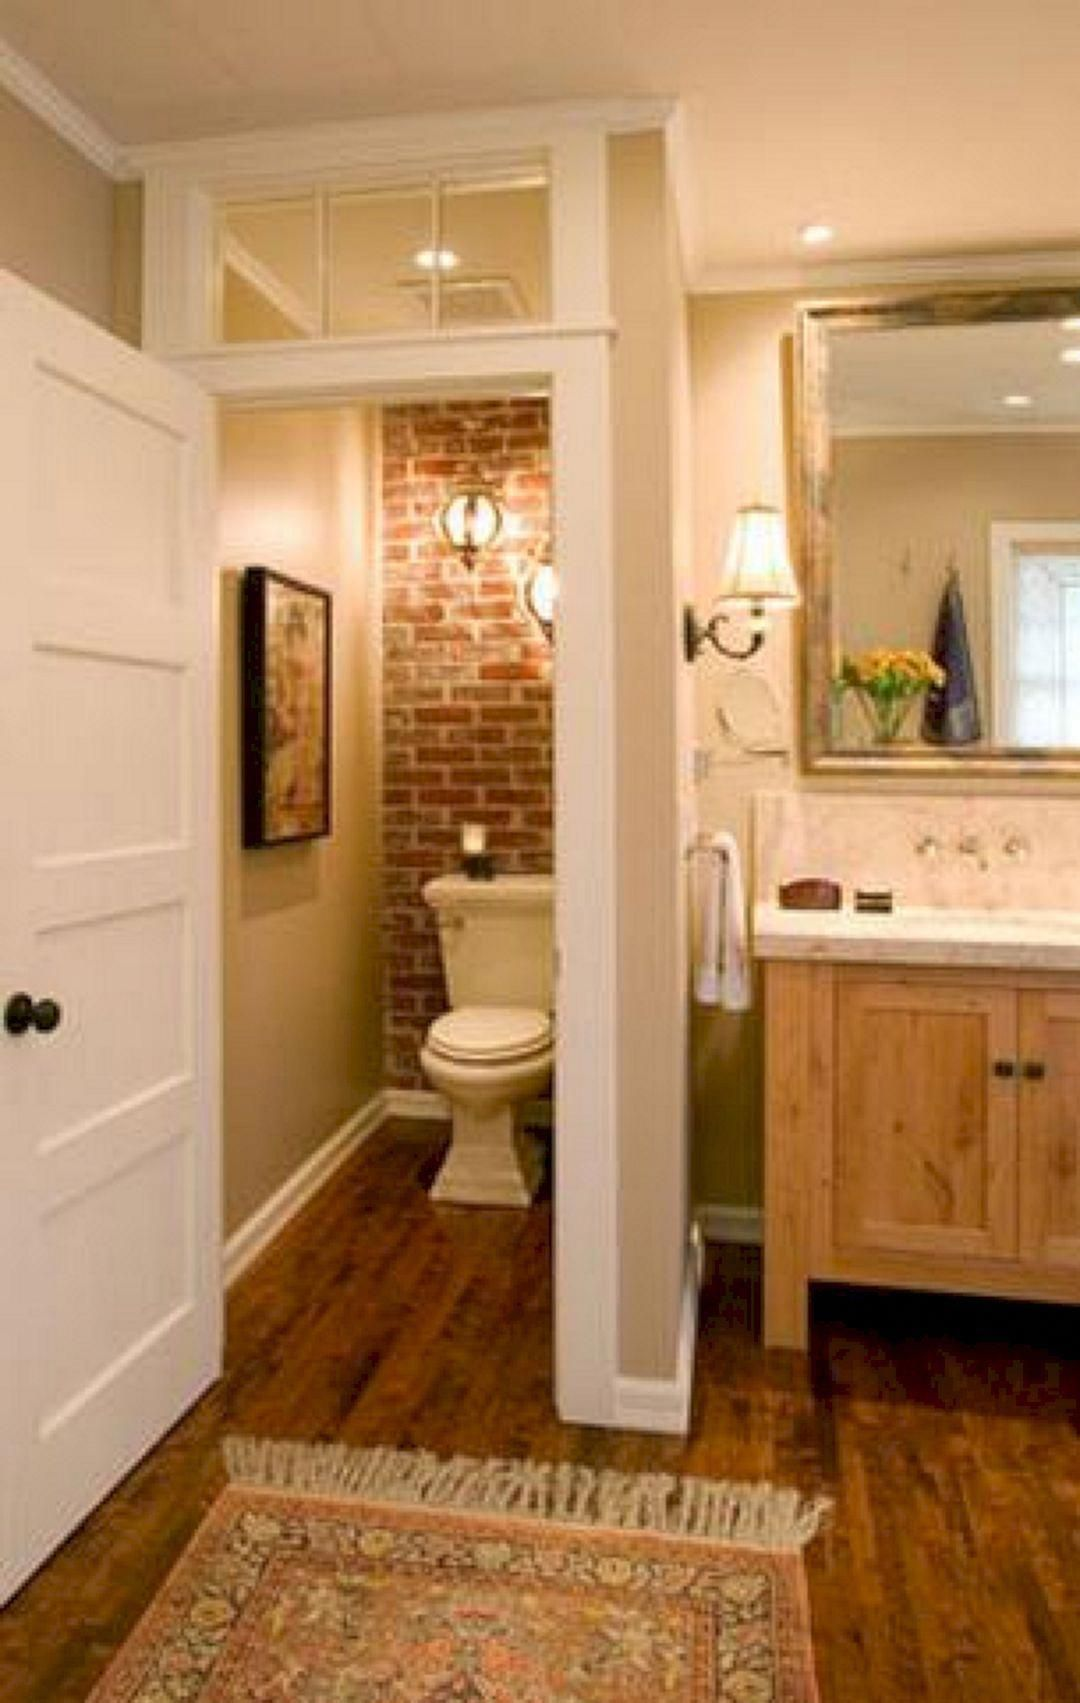 Knowledgeable activated bathroom redesign a fantastic read